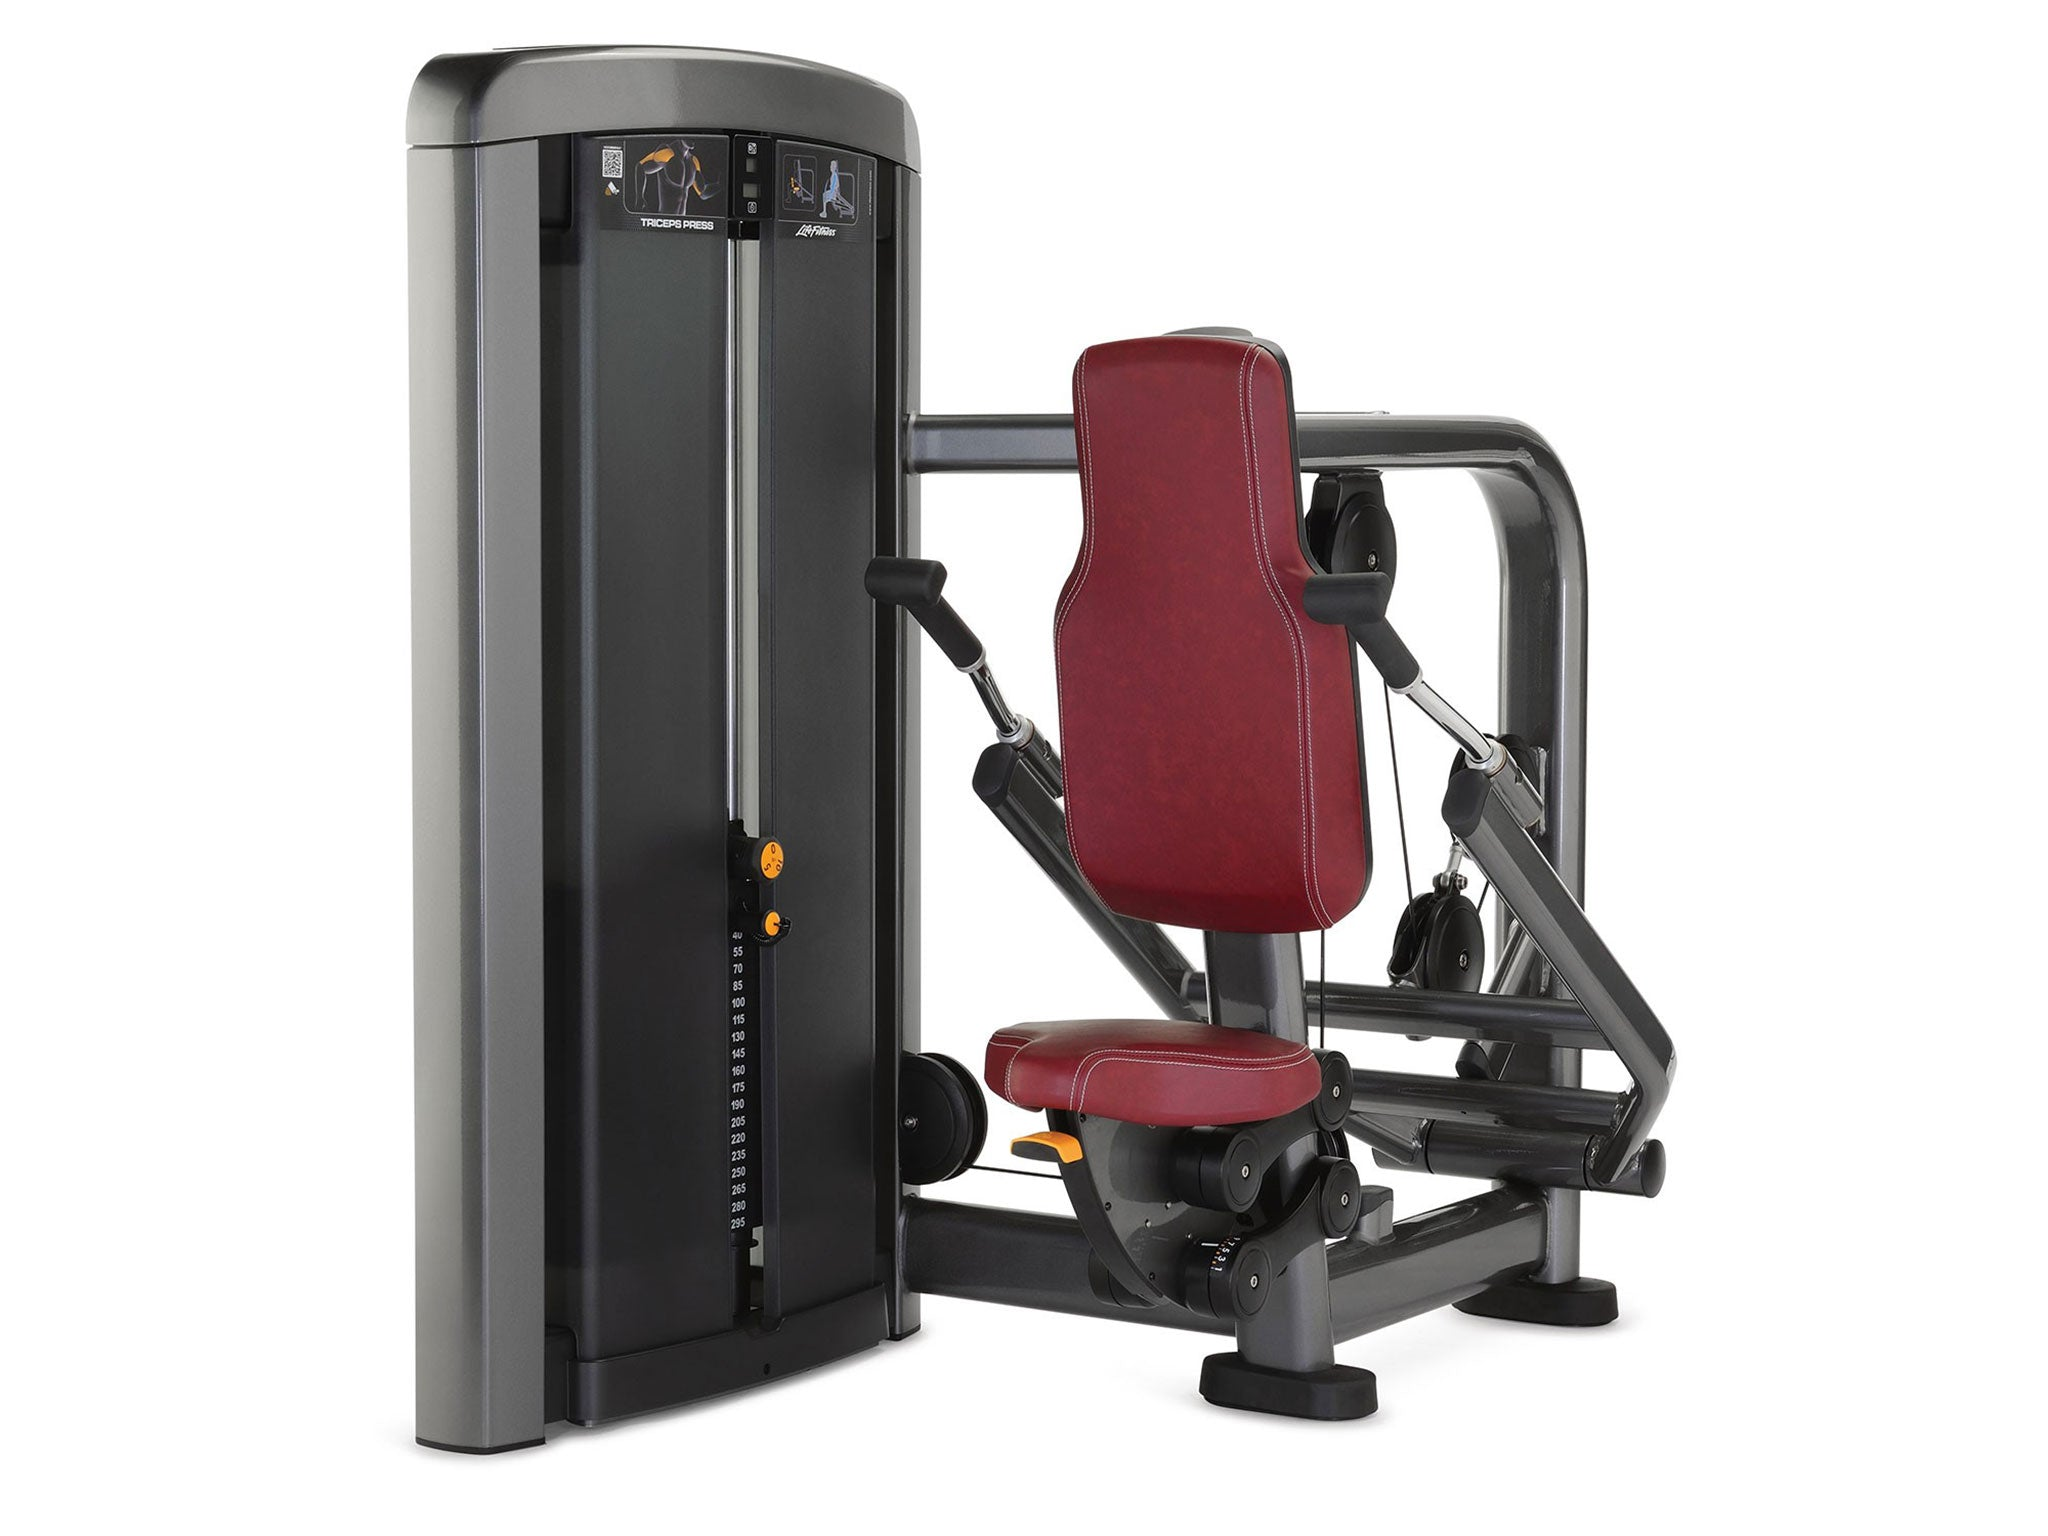 Factory image of a used Life Fitness Insignia Series Triceps Press